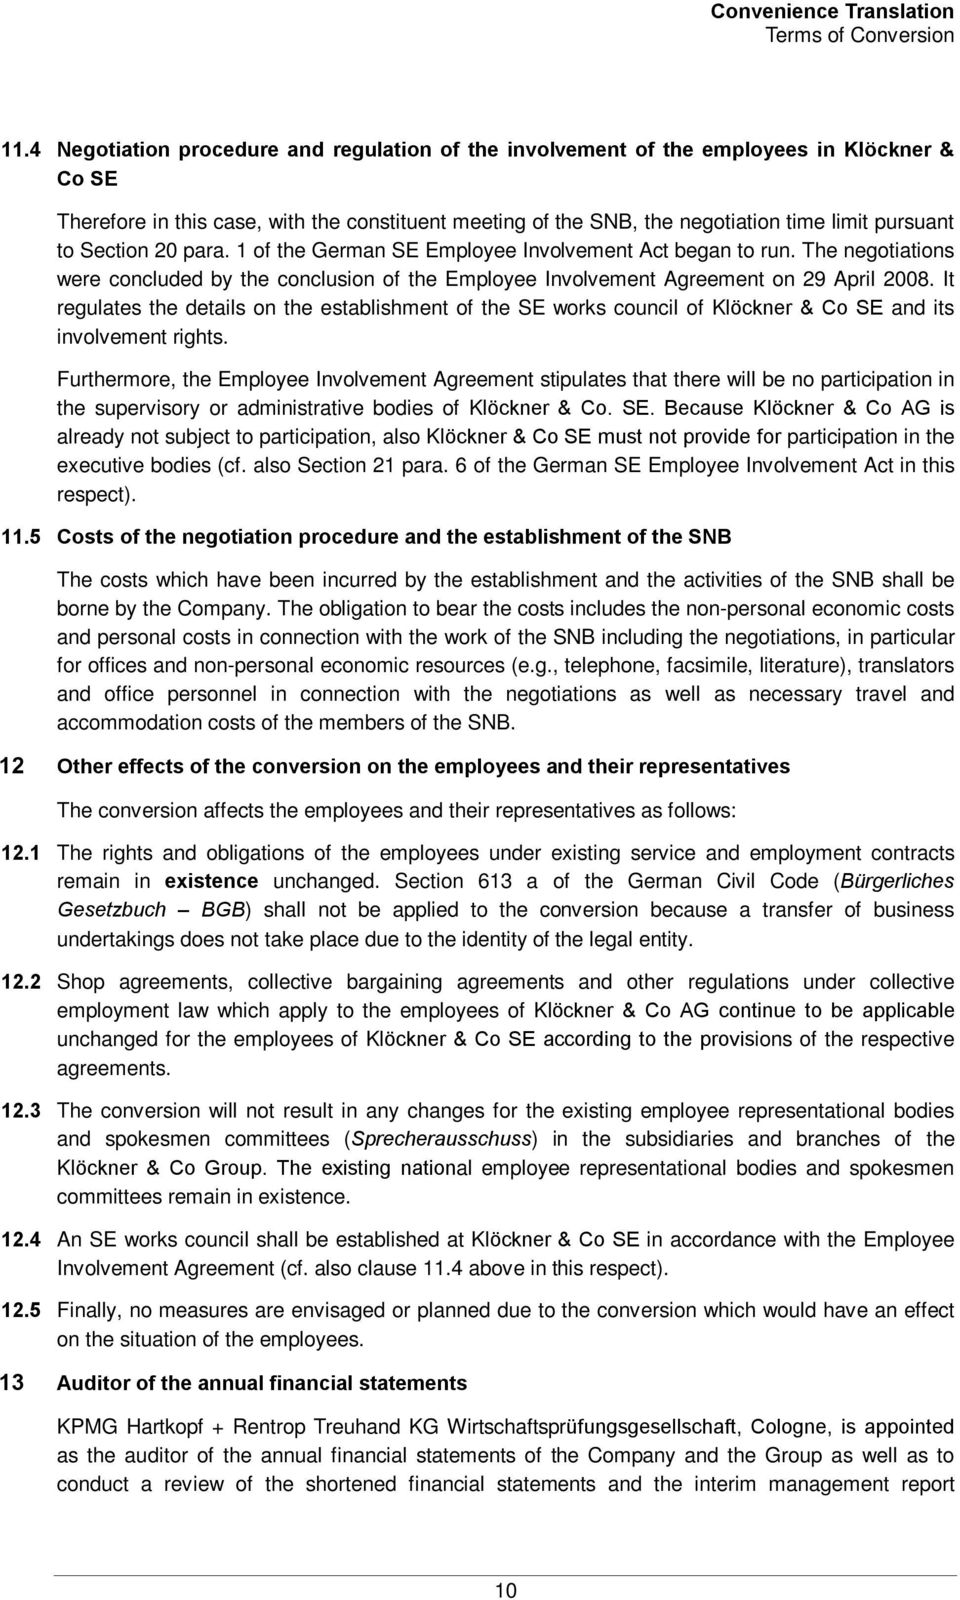 Section 20 para. 1 of the German SE Employee Involvement Act began to run. The negotiations were concluded by the conclusion of the Employee Involvement Agreement on 29 April 2008.